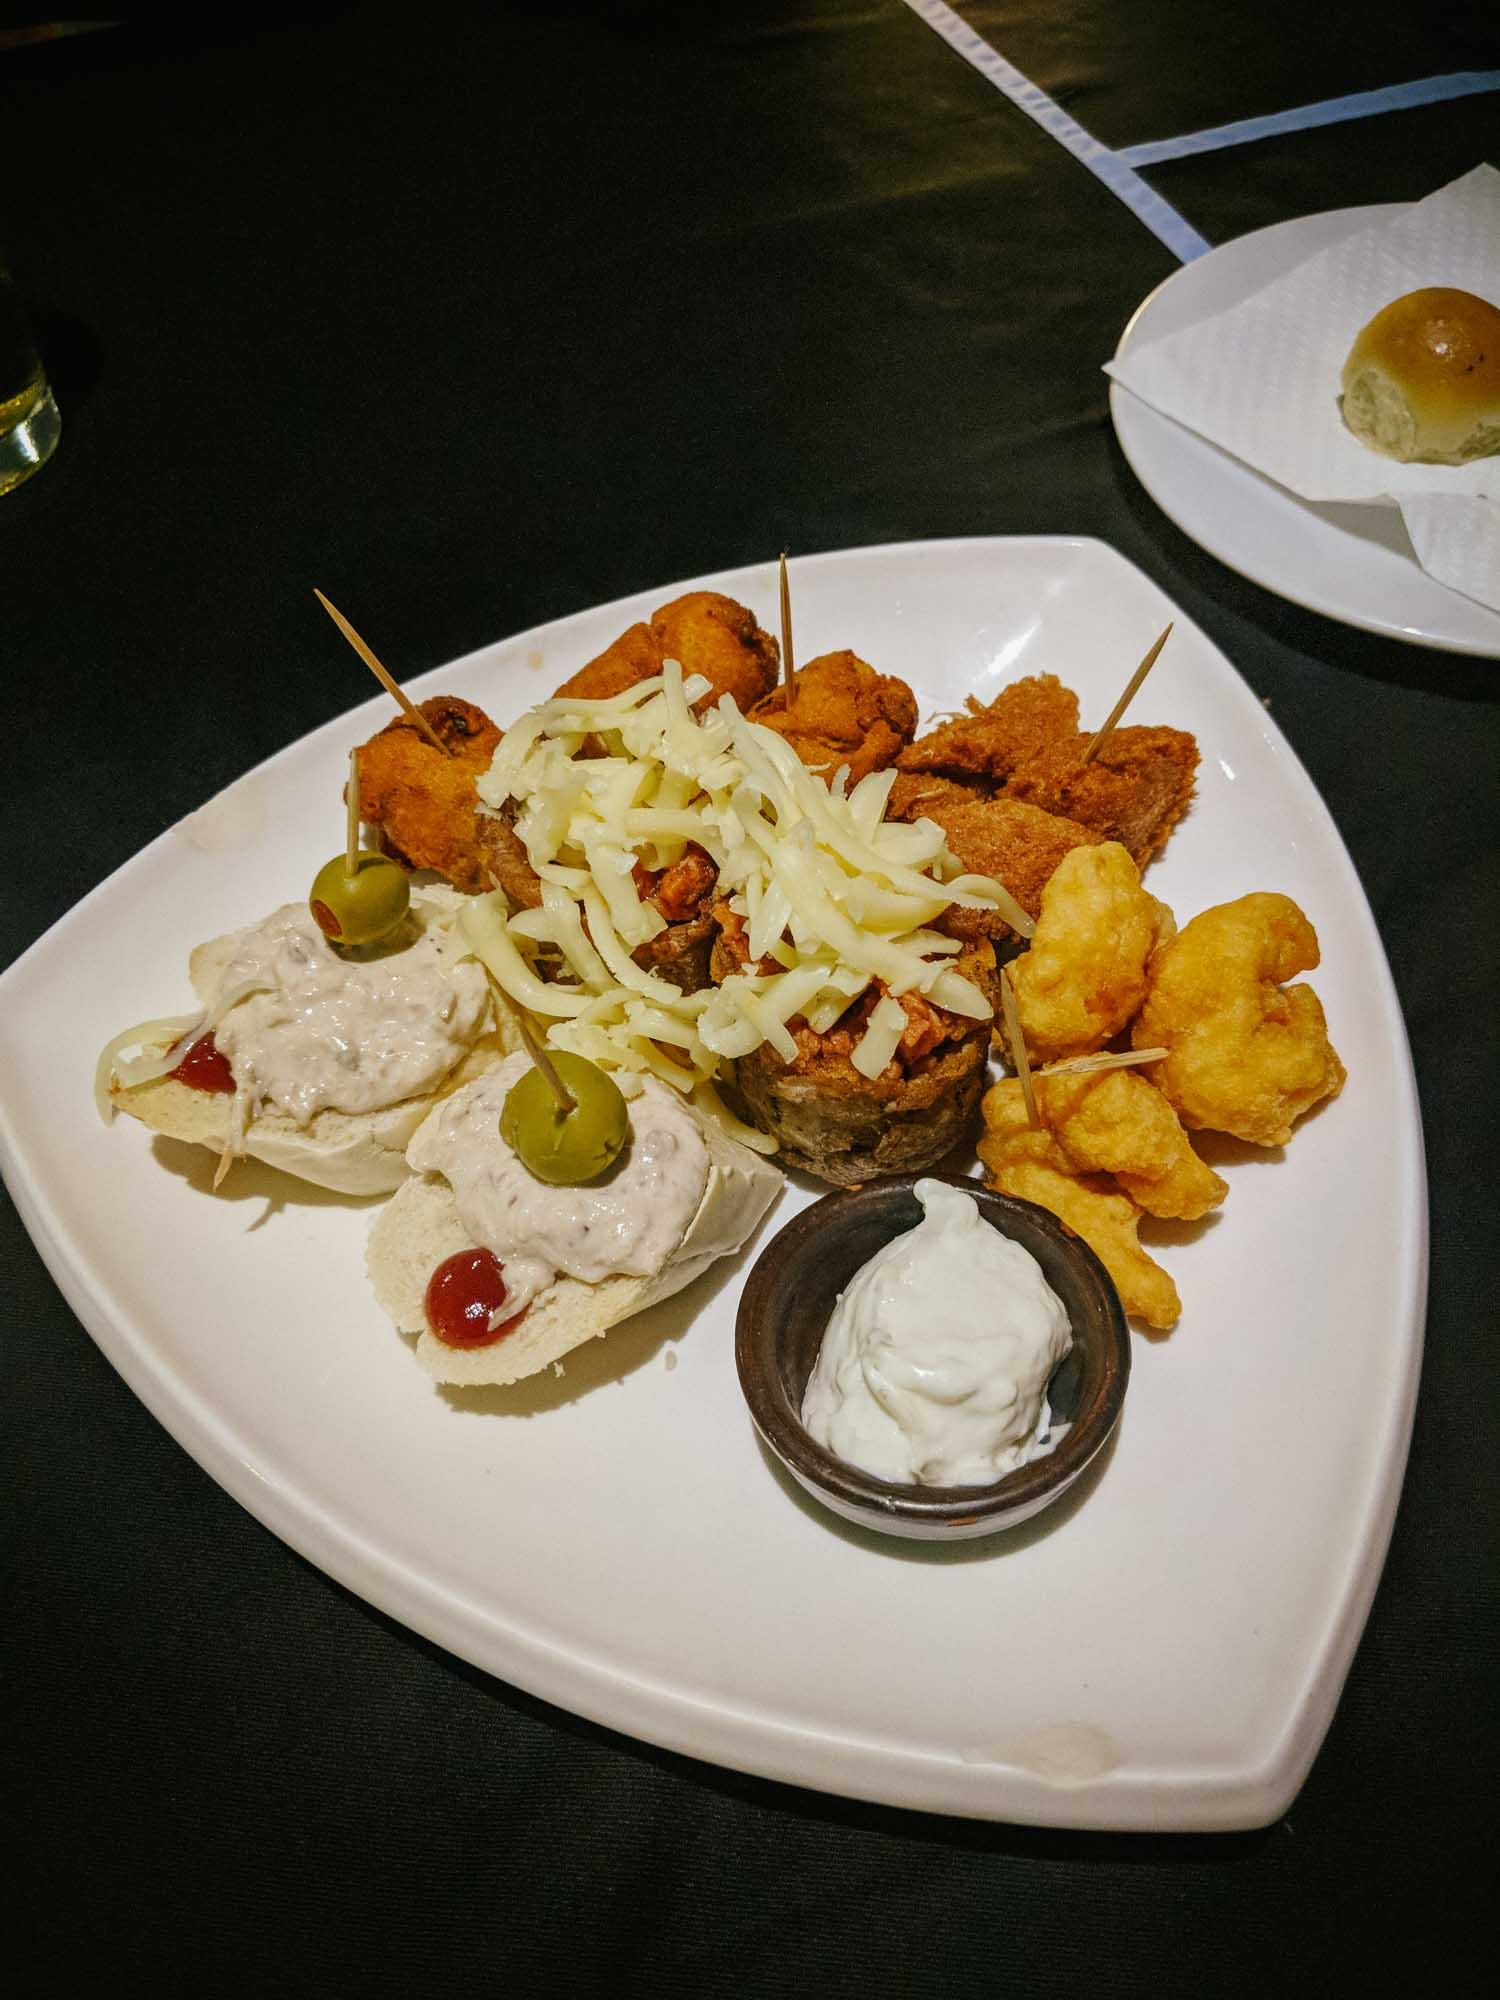 Plate of appetizers at Habana Blues in Vedado, Havana, Cuba